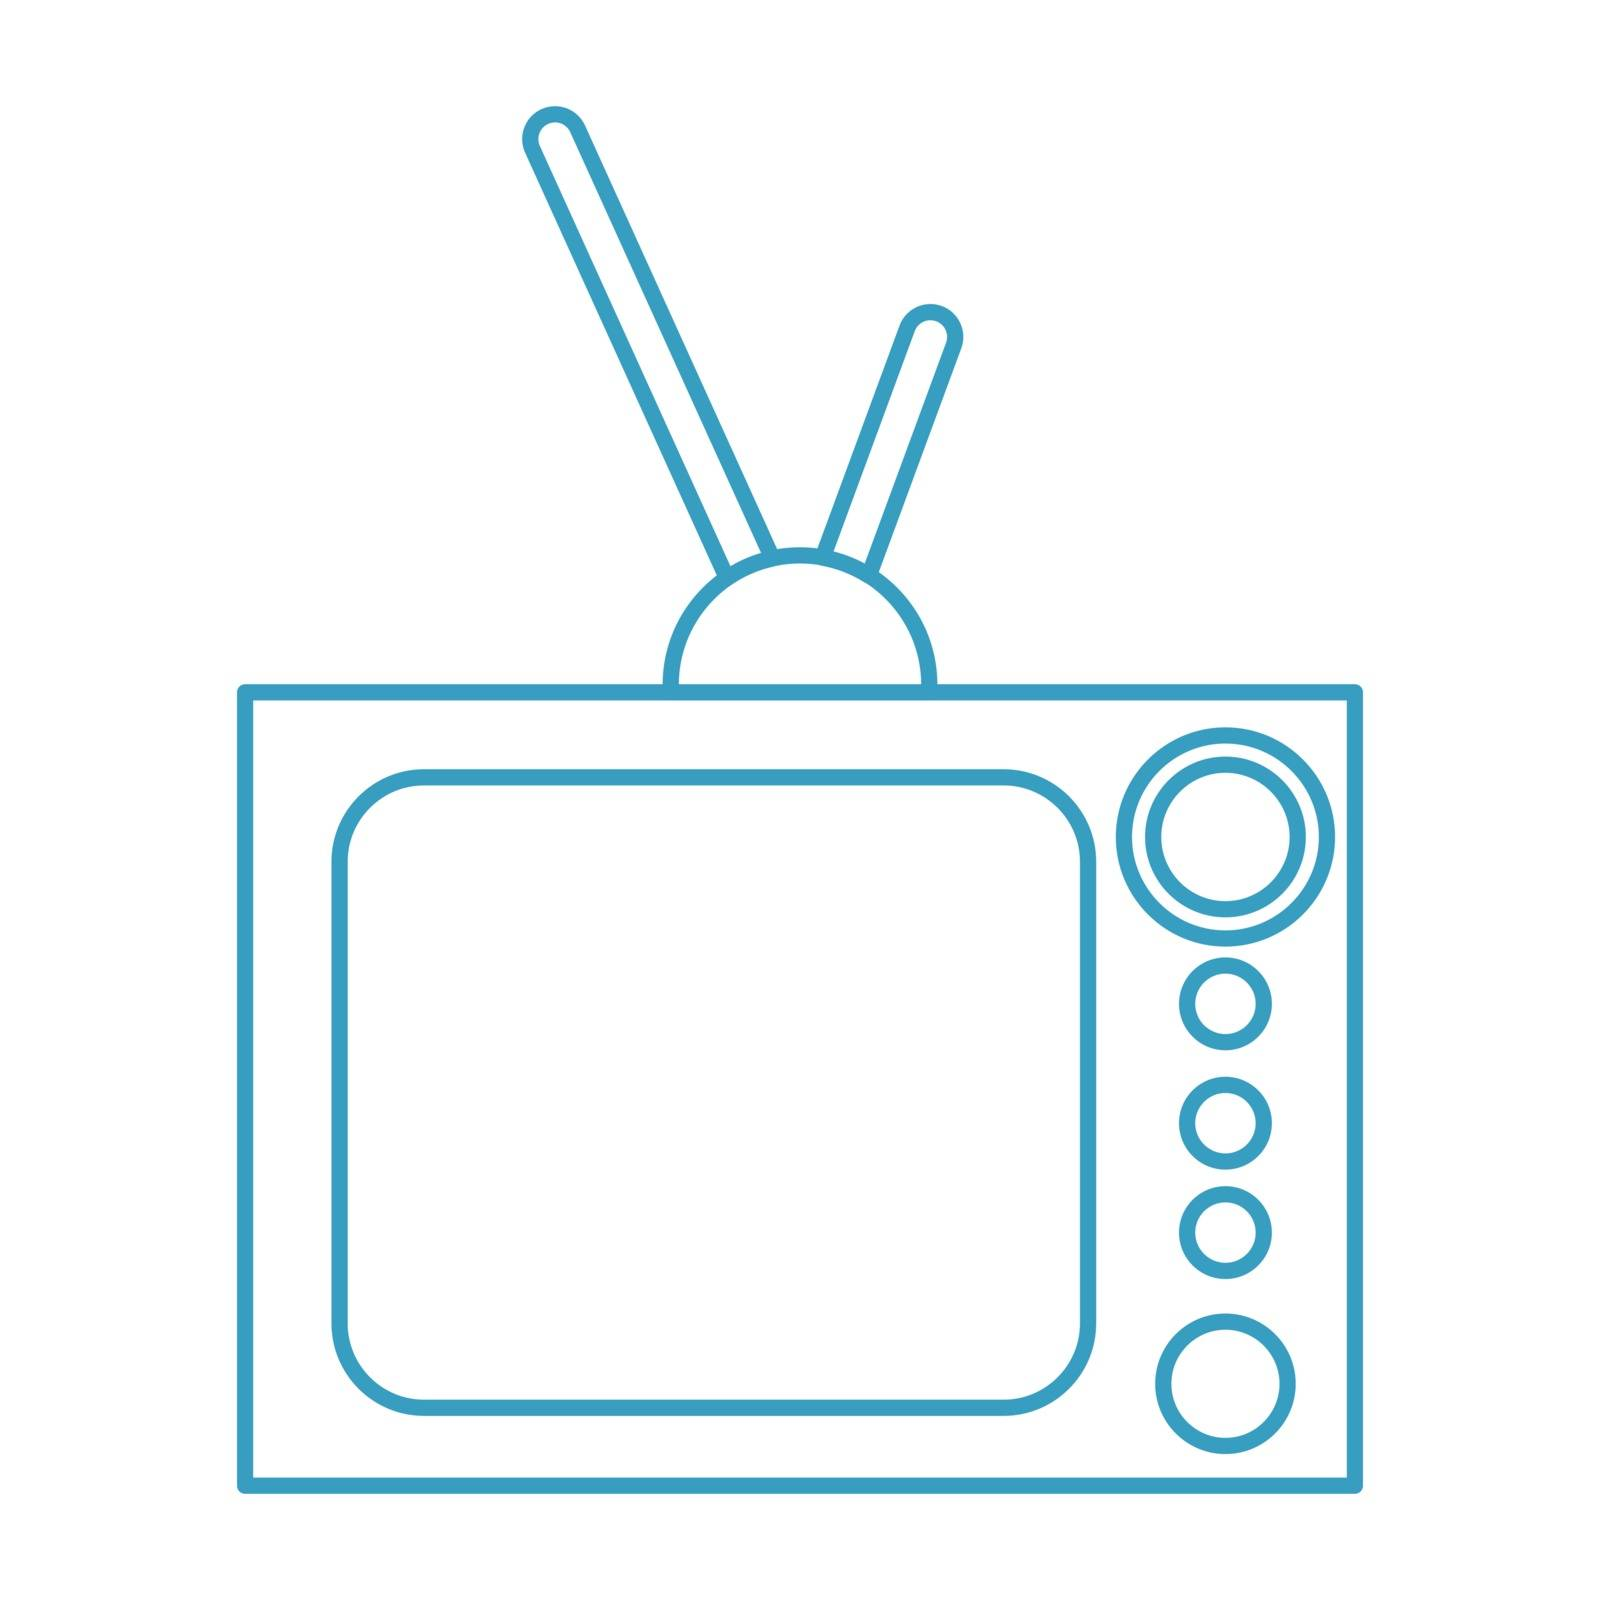 Thin line television icon by ang_bay